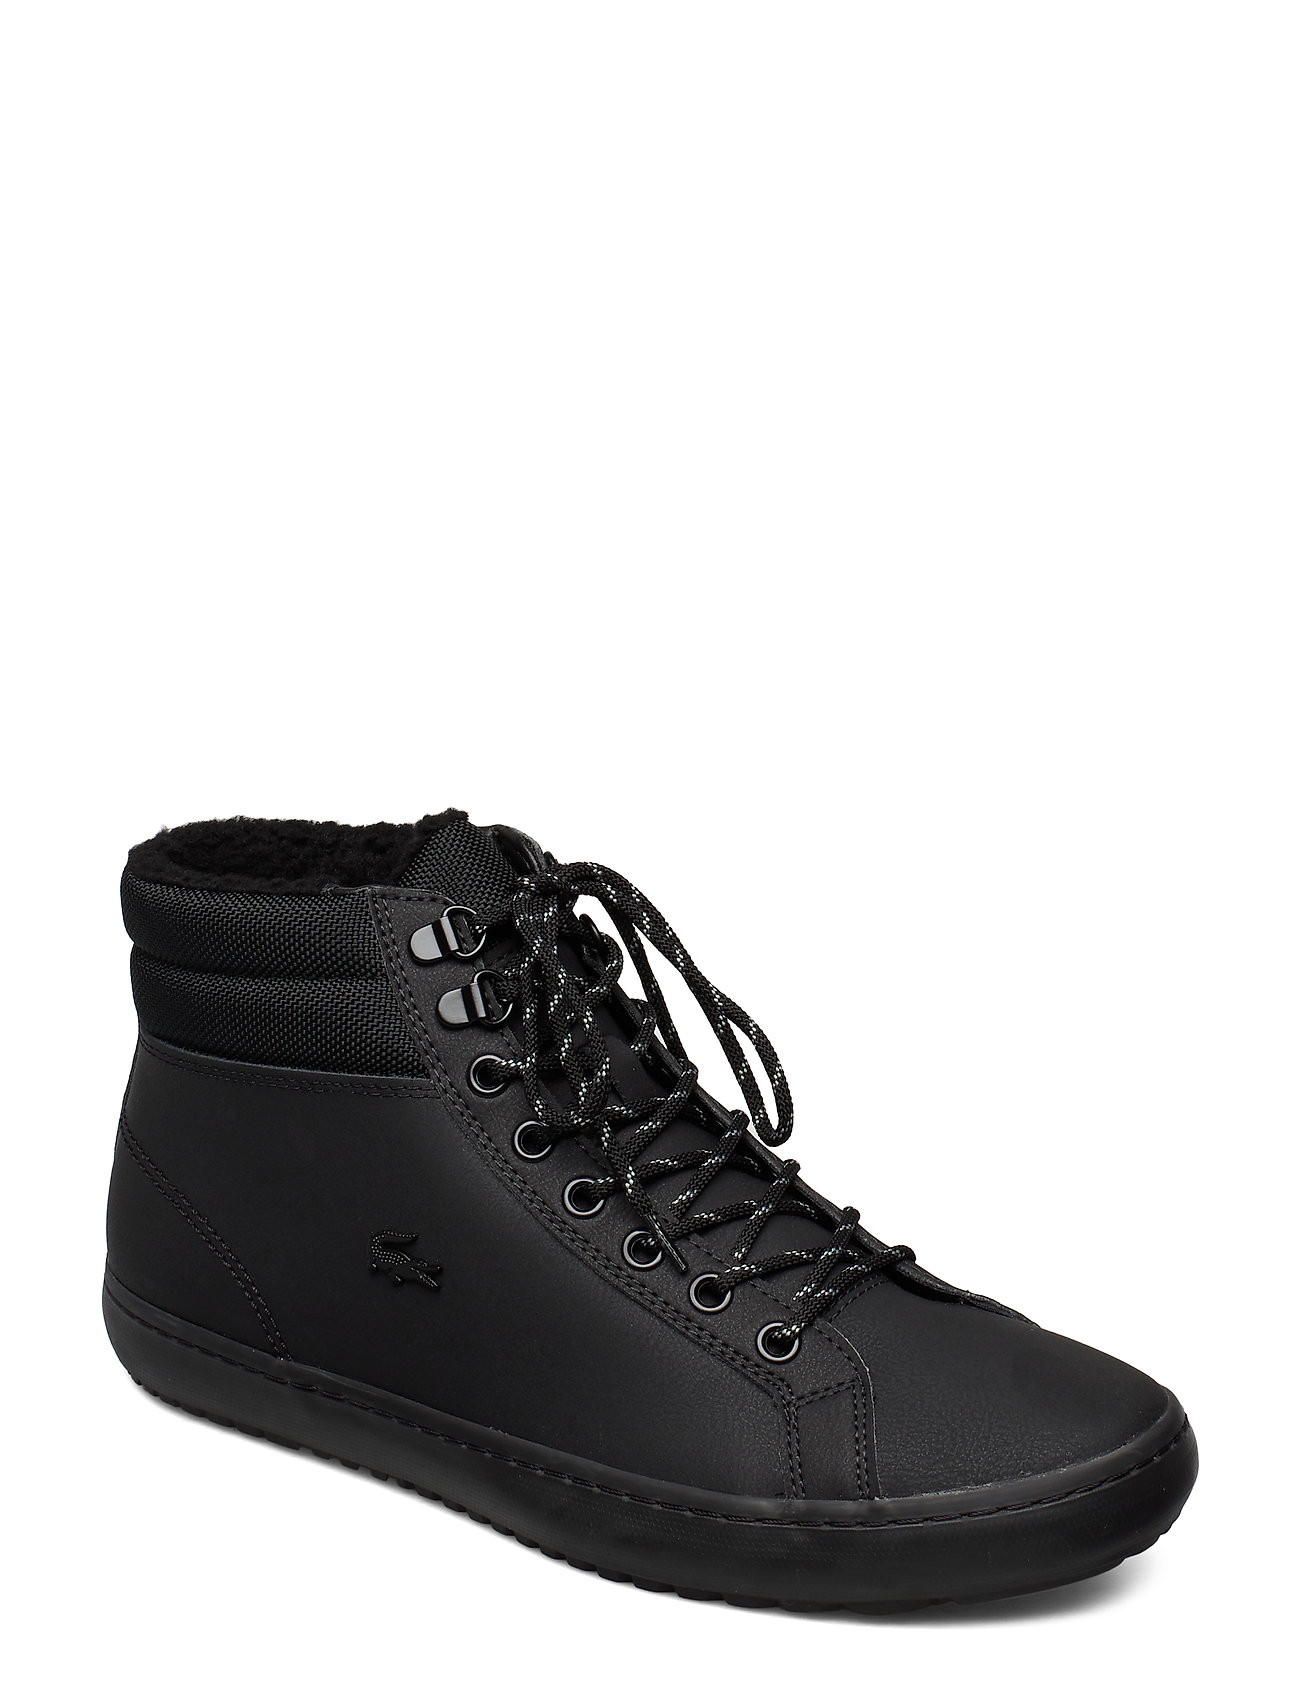 Image of Strghtsetherm4192cma High-top Sneakers Sort Lacoste Shoes (3246472569)